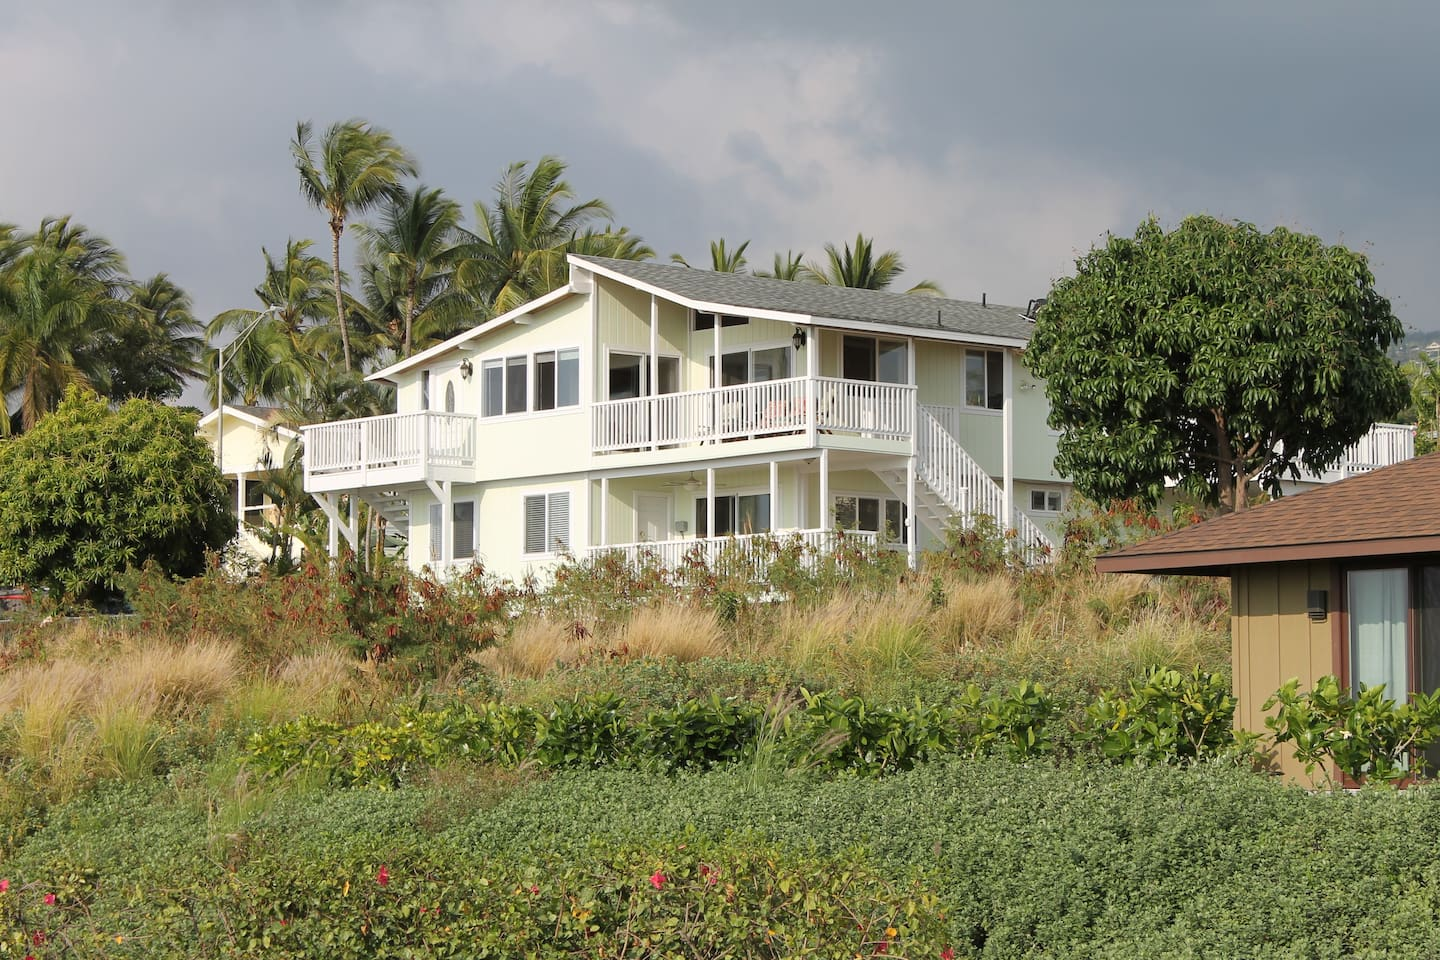 Curbside view of the villa